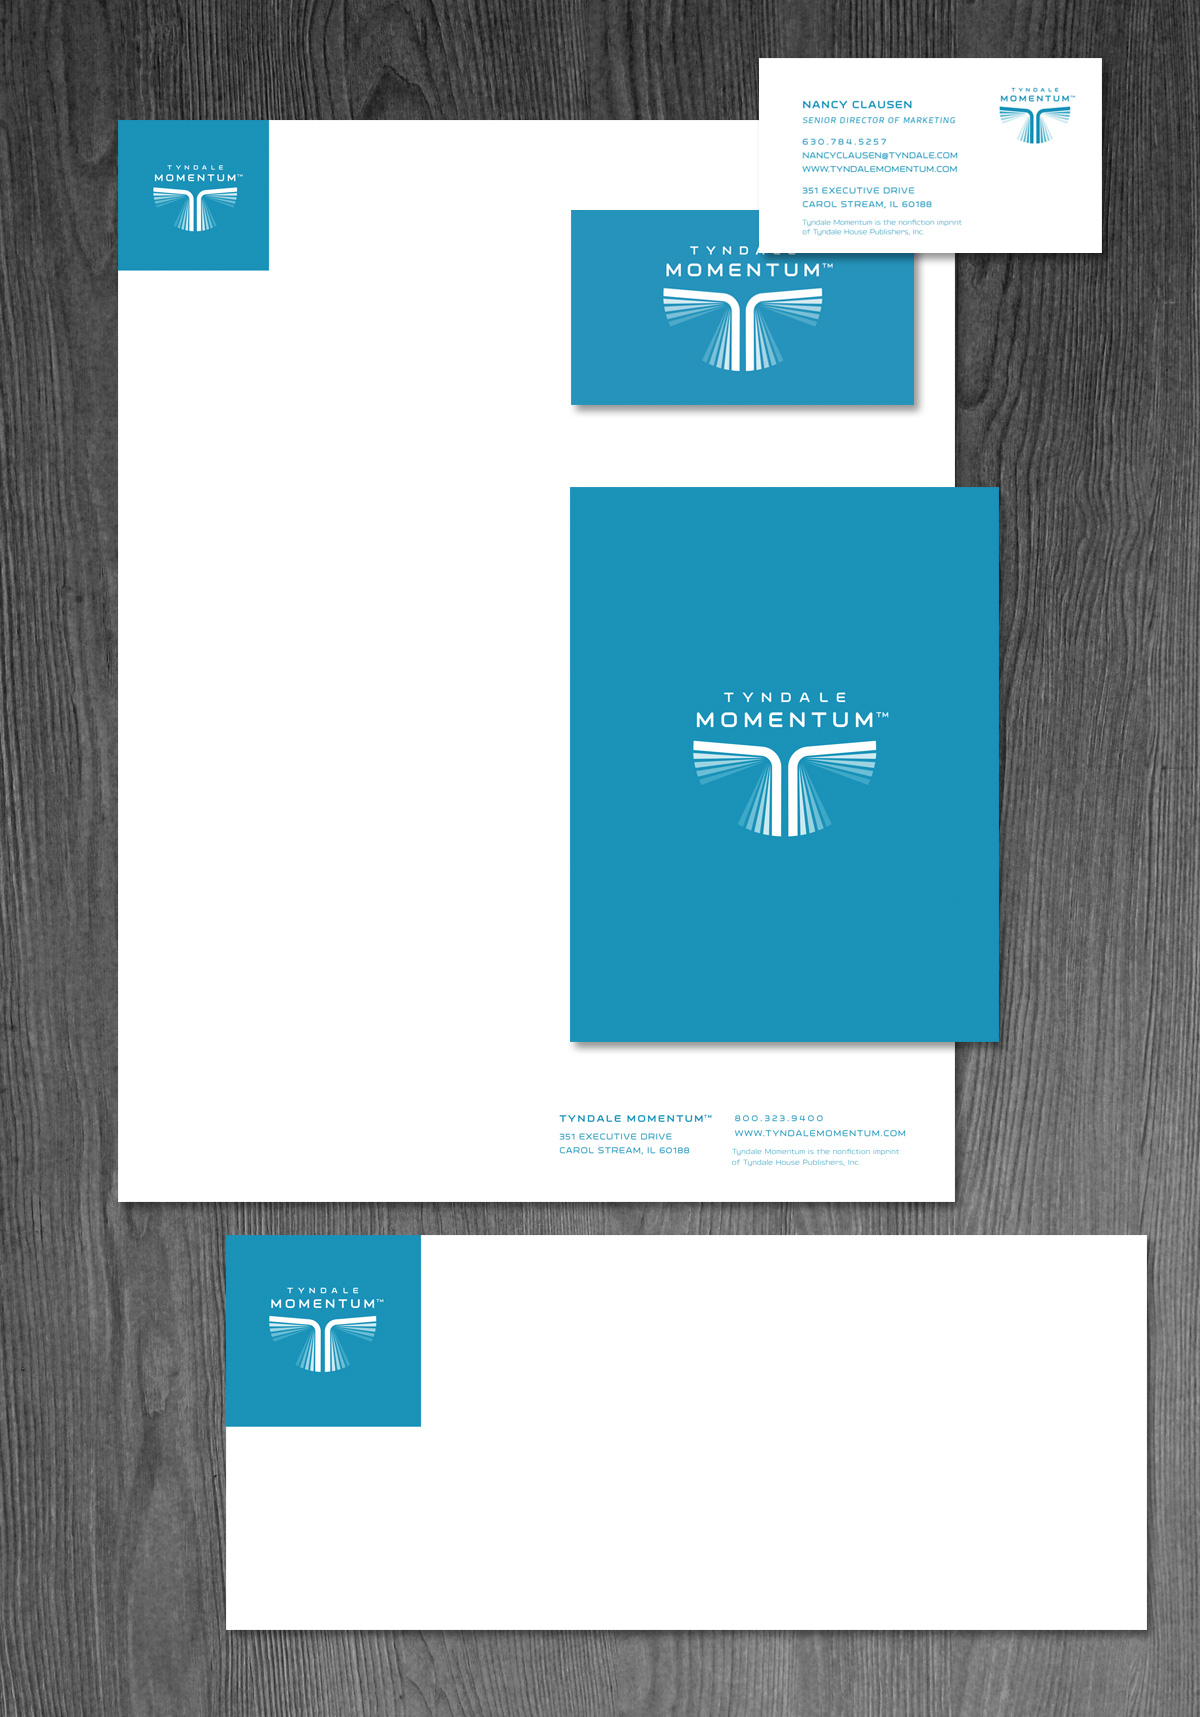 Tyndale Momentum business papers design